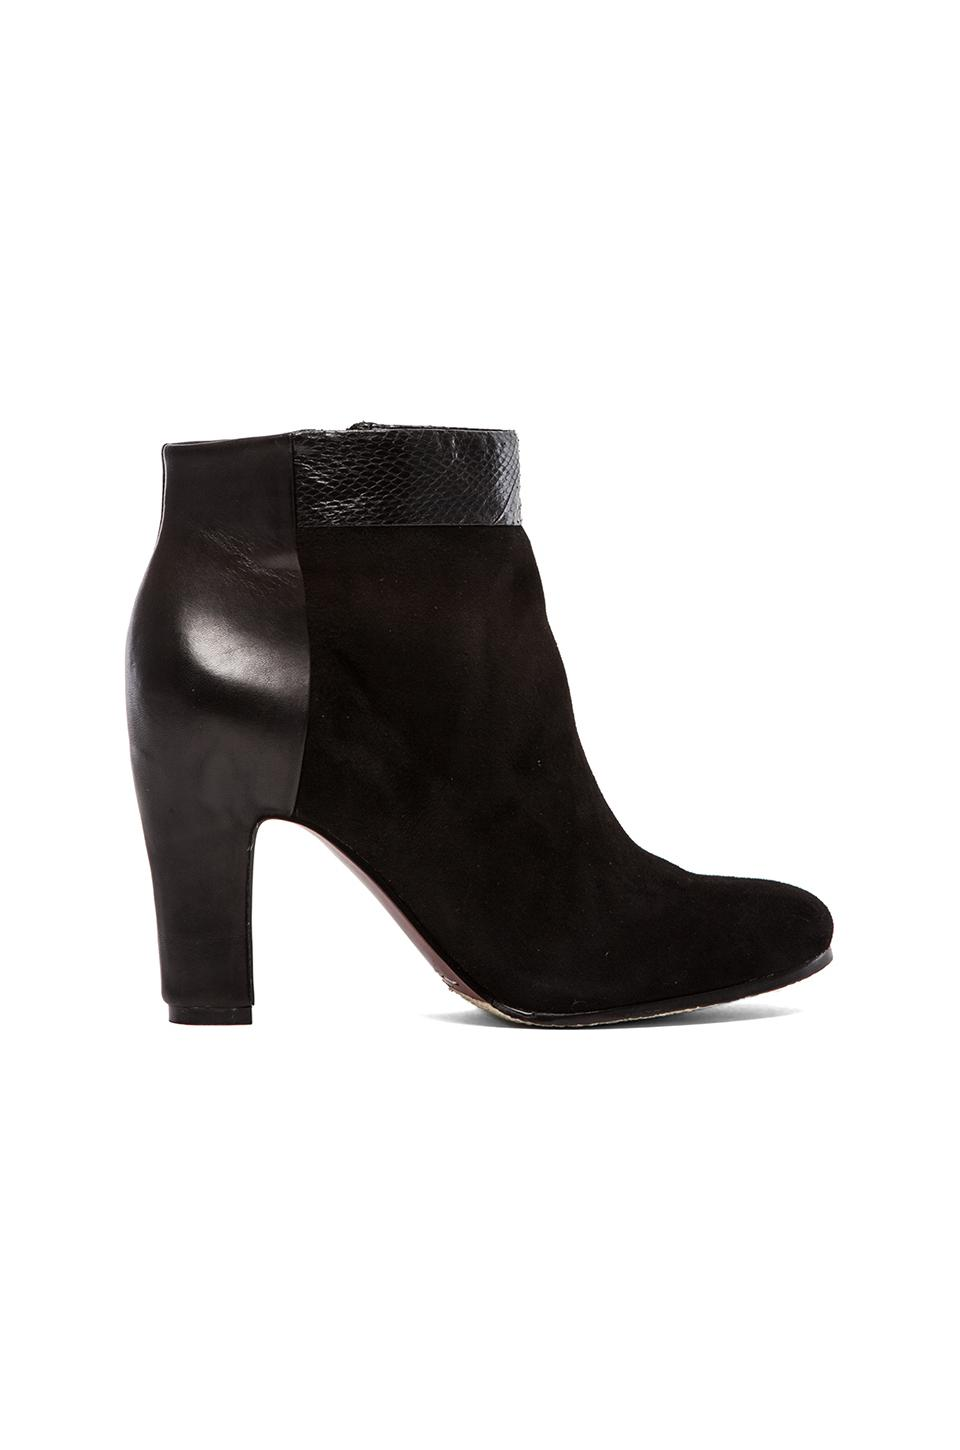 Sam Edelman Shay Bootie in Black